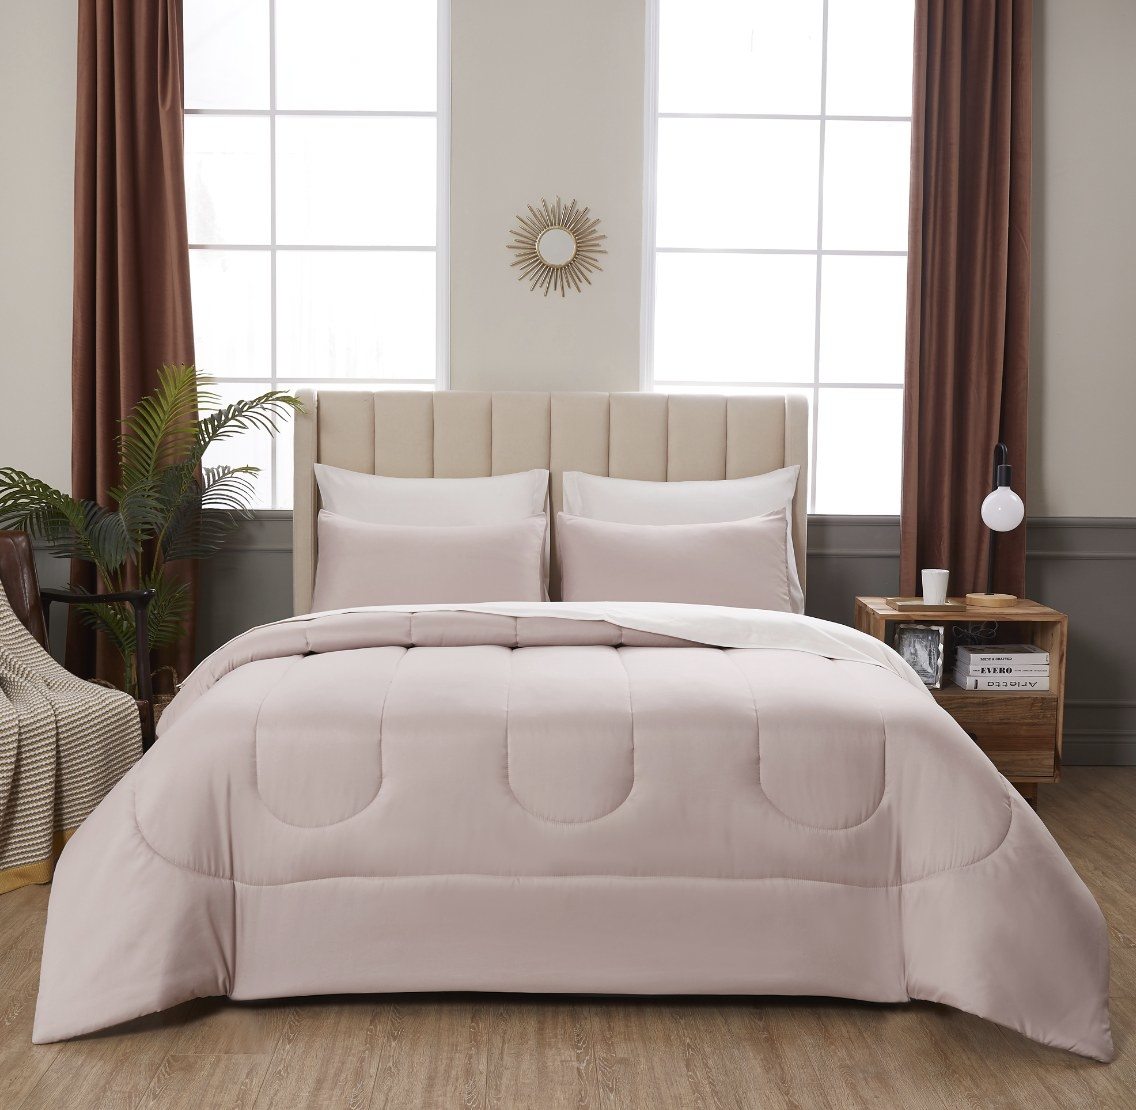 The blush colored set is on a made bed and is in a neutral-toned and well lit room